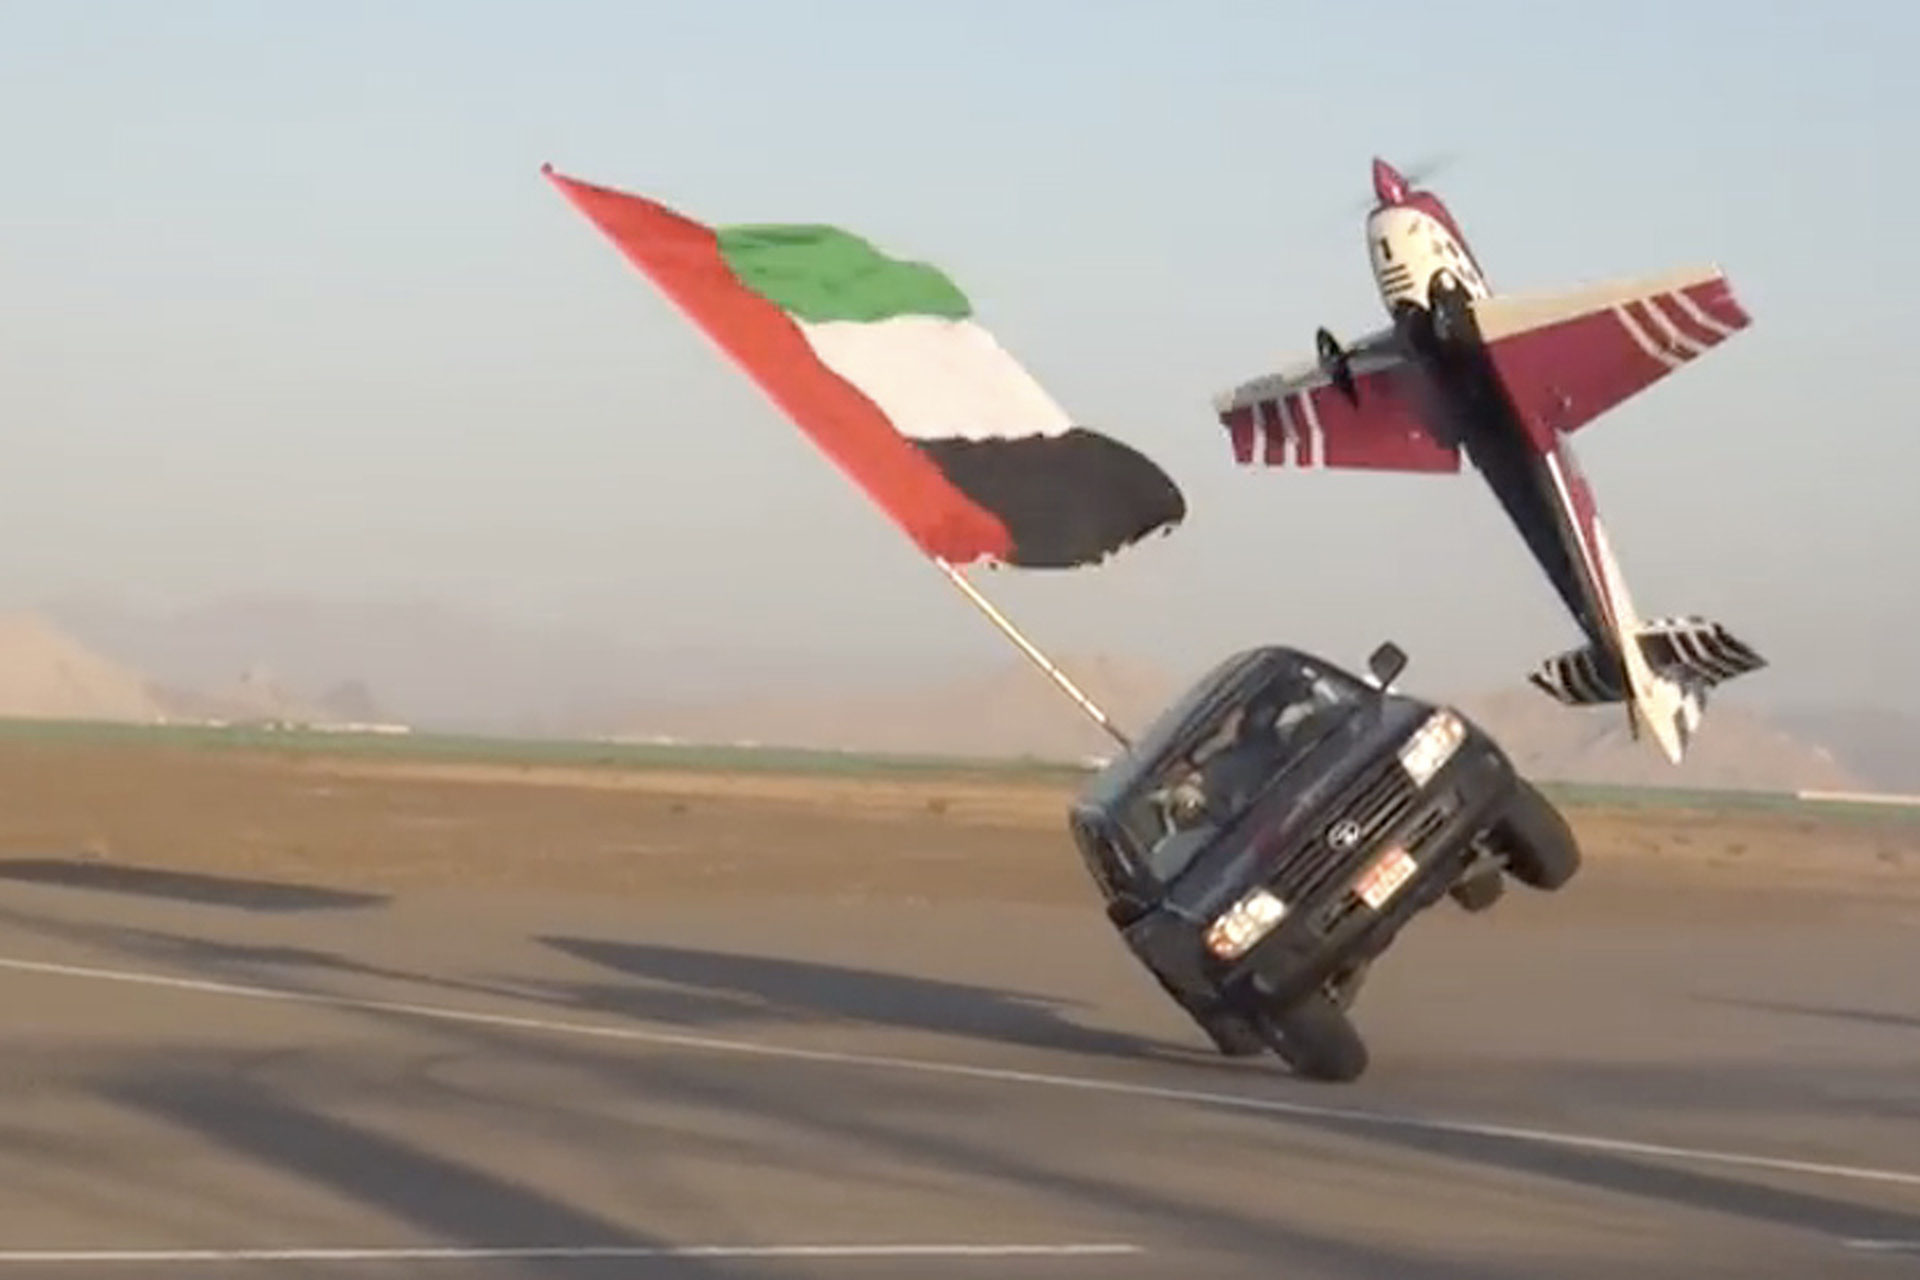 This Two-Wheel Land Cruiser Video is Beyond Insane